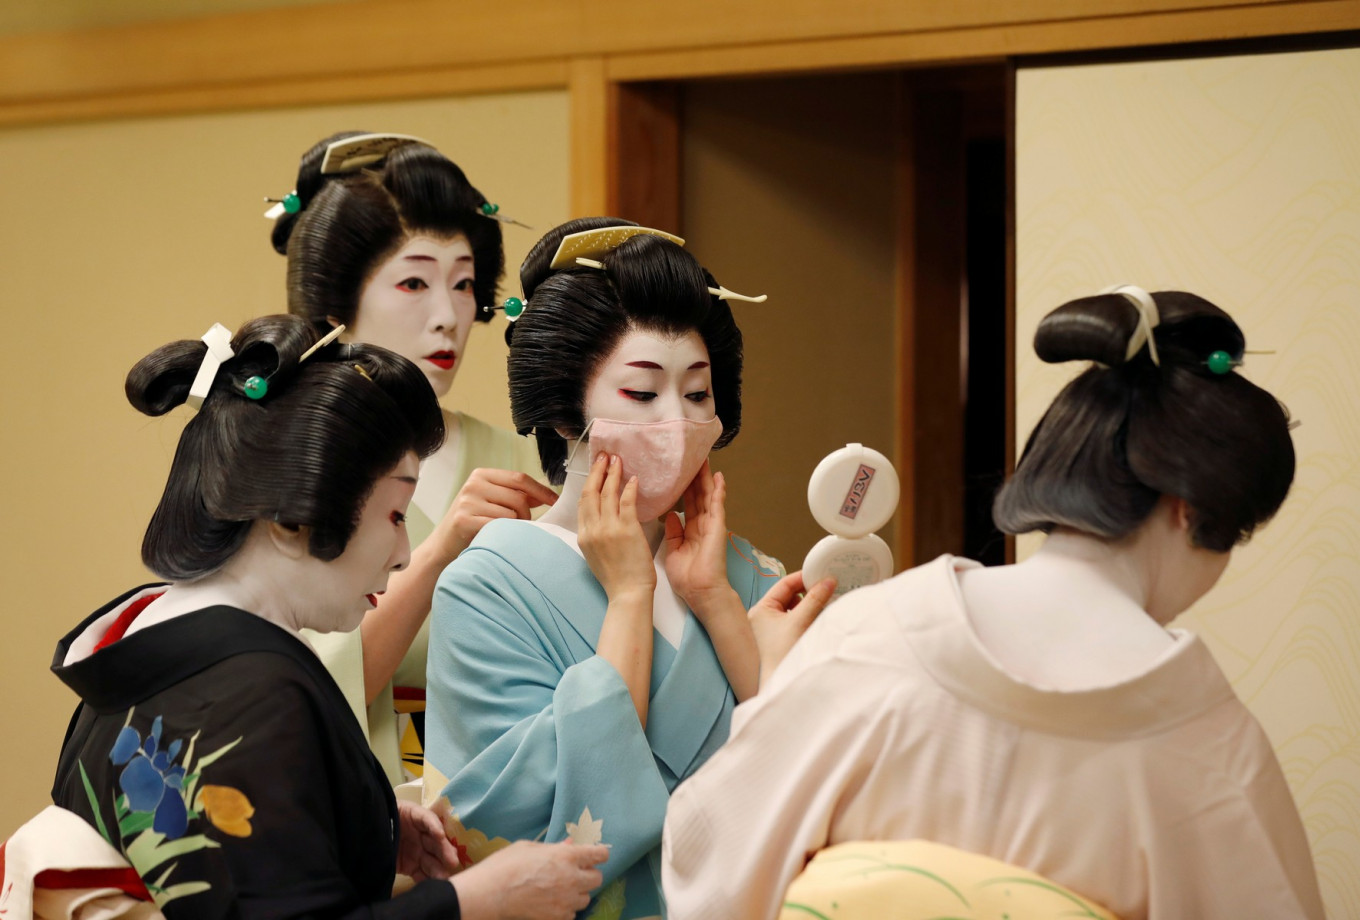 Senior geisha help Koiku put on a protective face mask to have a portrait photo taken of her wearing one for Reuters, before working at a party being hosted by customers, where she will entertain with other geisha, at Asada, a luxury Japanese restaurant, during the coronavirus disease (COVID-19) outbreak, in Tokyo, Japan, June 23, 2020. Reuters/Kim Kyung-Hoon